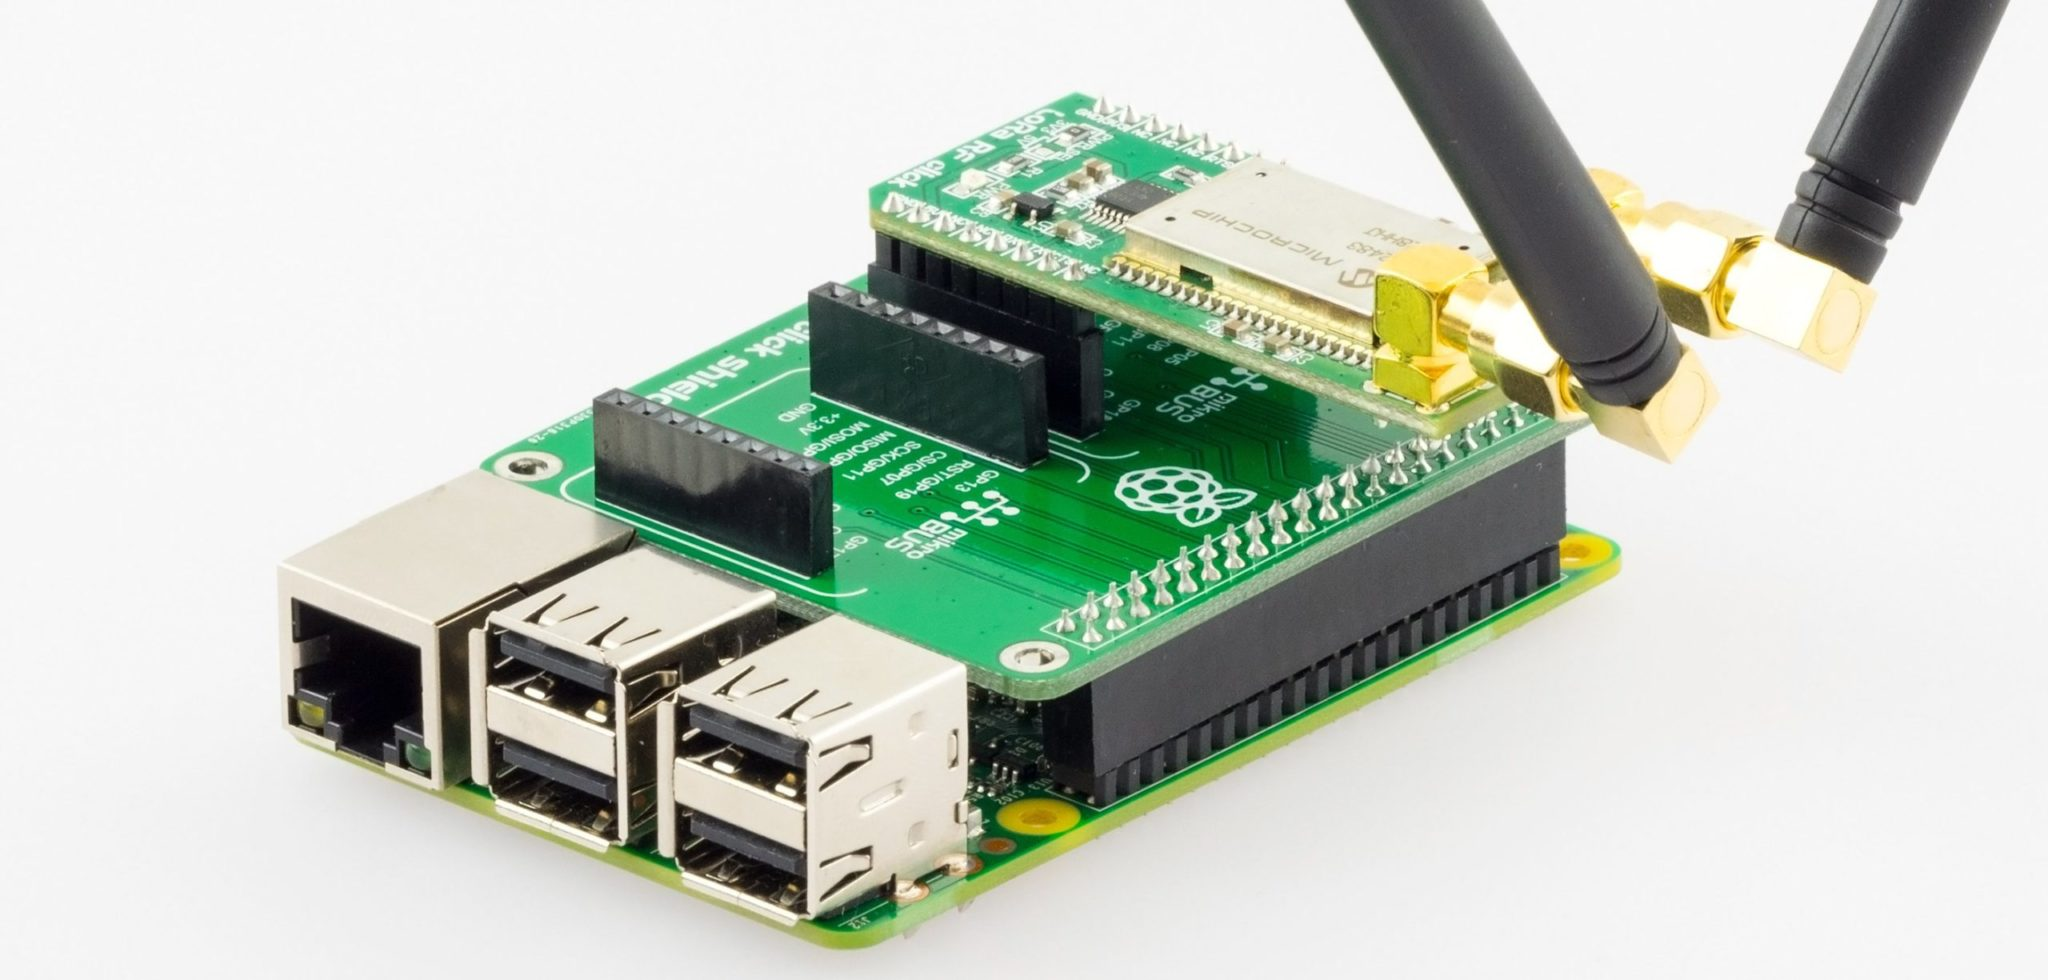 Cum să realizăm un gateway LoRaWAN LoRaWAN gateway LoRaWAN Raspberry Pi Concentratoare modul radio LoRa iC880A - LoRaWAN Concentrator 868MHz bazate pe Raspberry Pi modul concentrator One Channel Single Channel Single Channel Forwarder acoperire LoRaWAN